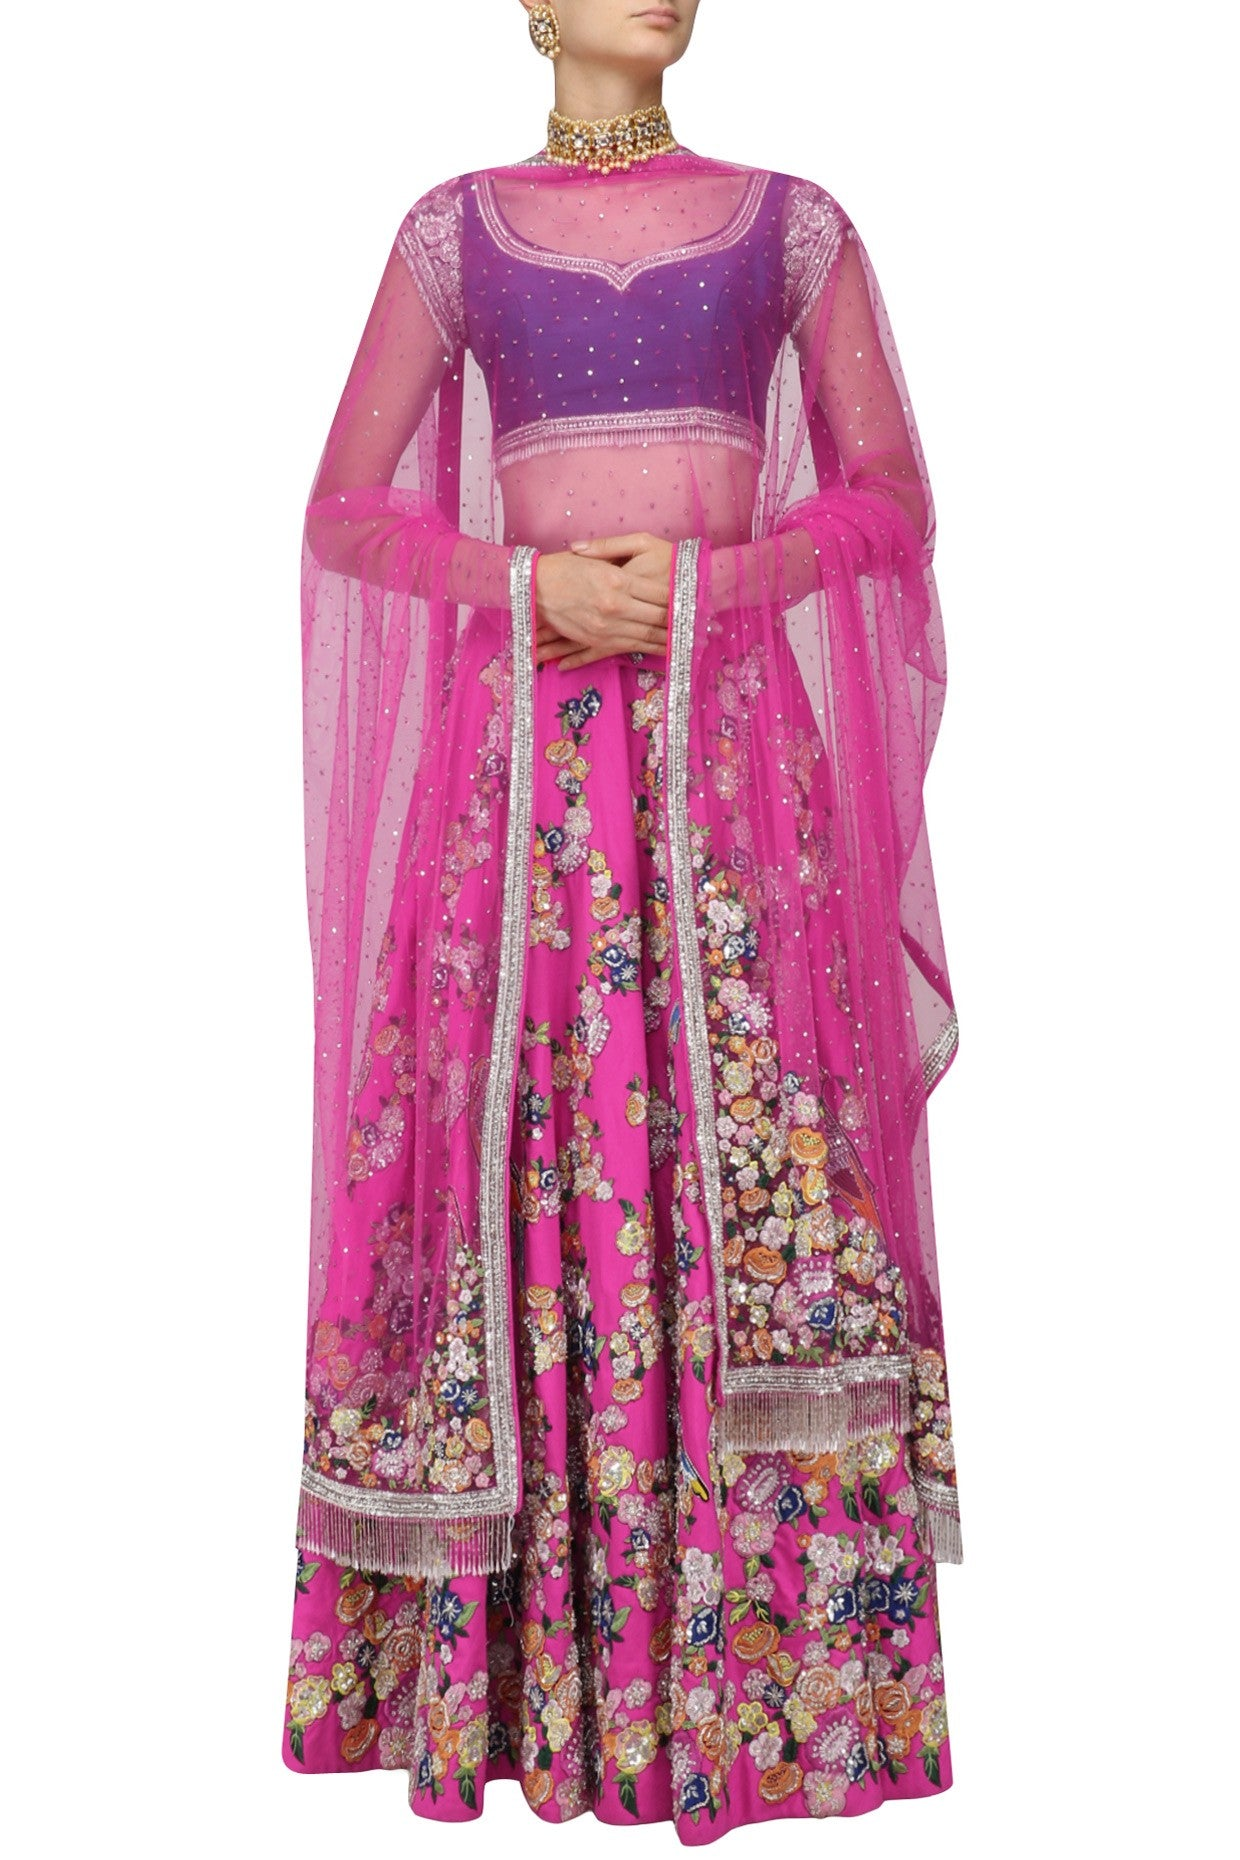 Dark Pink Color Lehenga With Blue Blouse